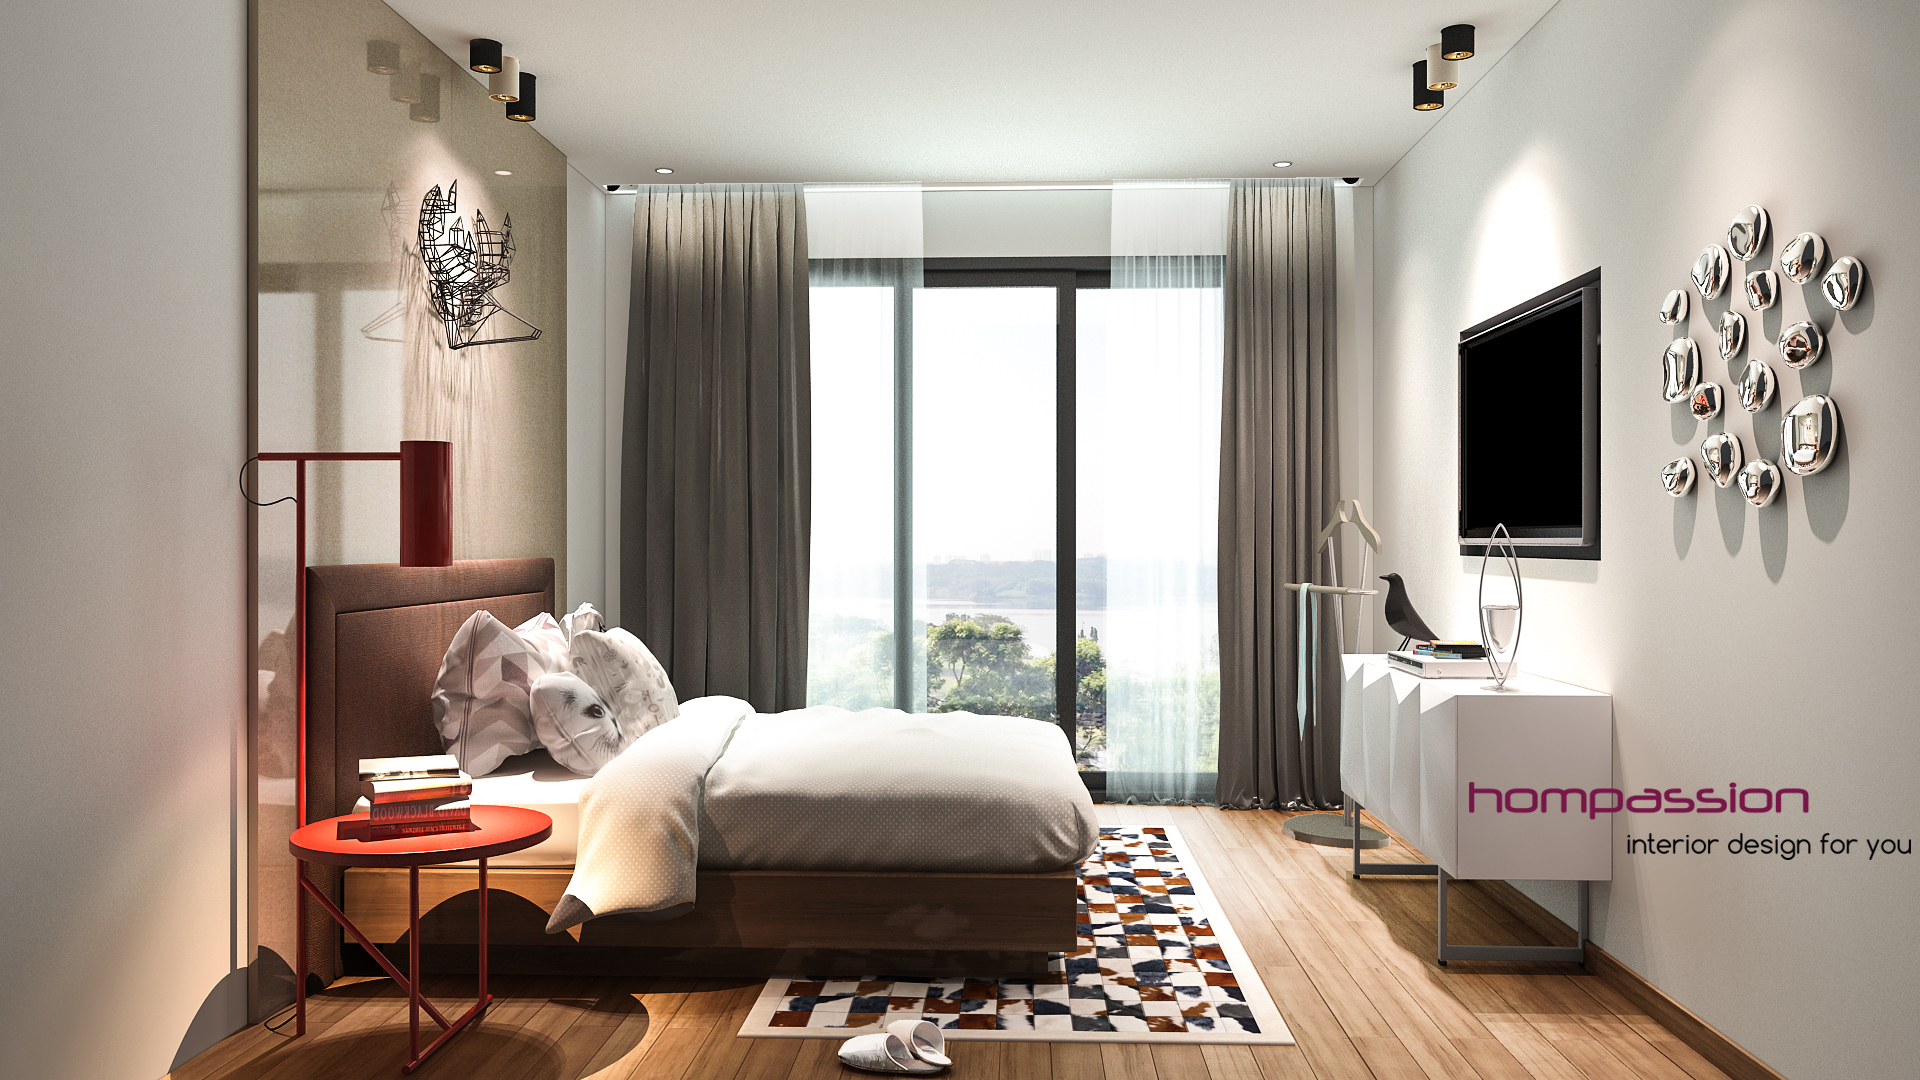 contemporary-bedroom-designs-interior-designers-in-mumbai-hompassion-2.jpg